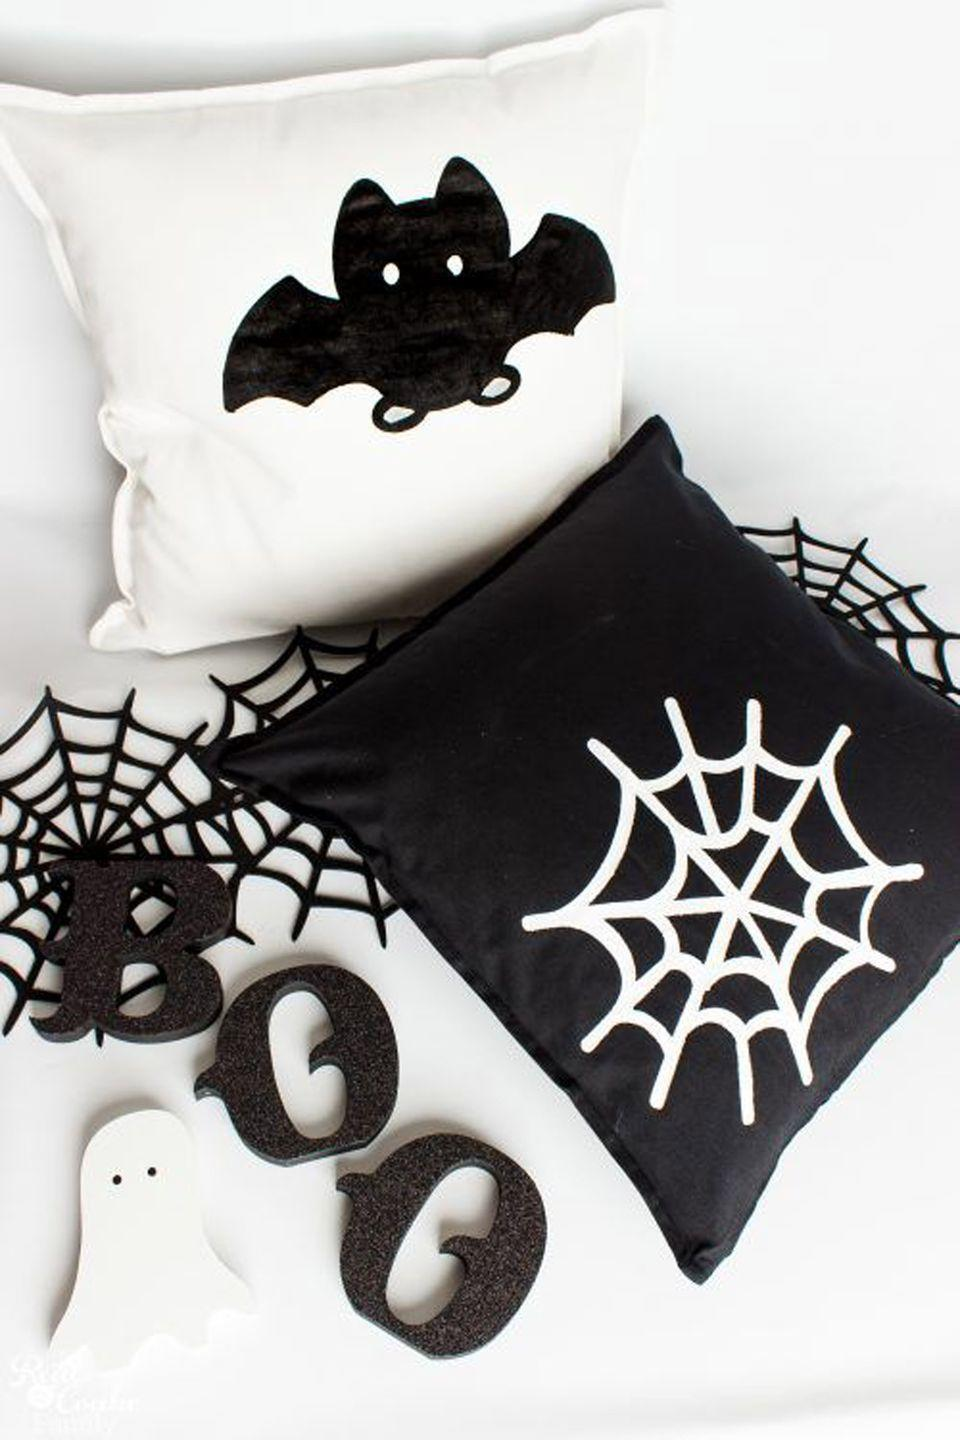 "<p>Decorate your home with easy <a href=""https://www.countryliving.com/diy-crafts/g1189/best-halloween-crafts-ever/"" rel=""nofollow noopener"" target=""_blank"" data-ylk=""slk:DIY Halloween projects"" class=""link rapid-noclick-resp"">DIY Halloween projects</a>, like these graphic black-and-white pillows.</p><p><strong>Get the tutorial at <a href=""https://www.realcoake.com/halloween-decorative-pillows/"" rel=""nofollow noopener"" target=""_blank"" data-ylk=""slk:Real Creative Real Organized"" class=""link rapid-noclick-resp"">Real Creative Real Organized</a>.</strong></p><p><a class=""link rapid-noclick-resp"" href=""https://www.amazon.com/beddingstar-European-Pillows-Pillowcase-Egyptian/dp/B07DXQTFNX/?tag=syn-yahoo-20&ascsubtag=%5Bartid%7C2139.g.34440360%5Bsrc%7Cyahoo-us"" rel=""nofollow noopener"" target=""_blank"" data-ylk=""slk:SHOP PILLOWS"">SHOP PILLOWS</a></p>"